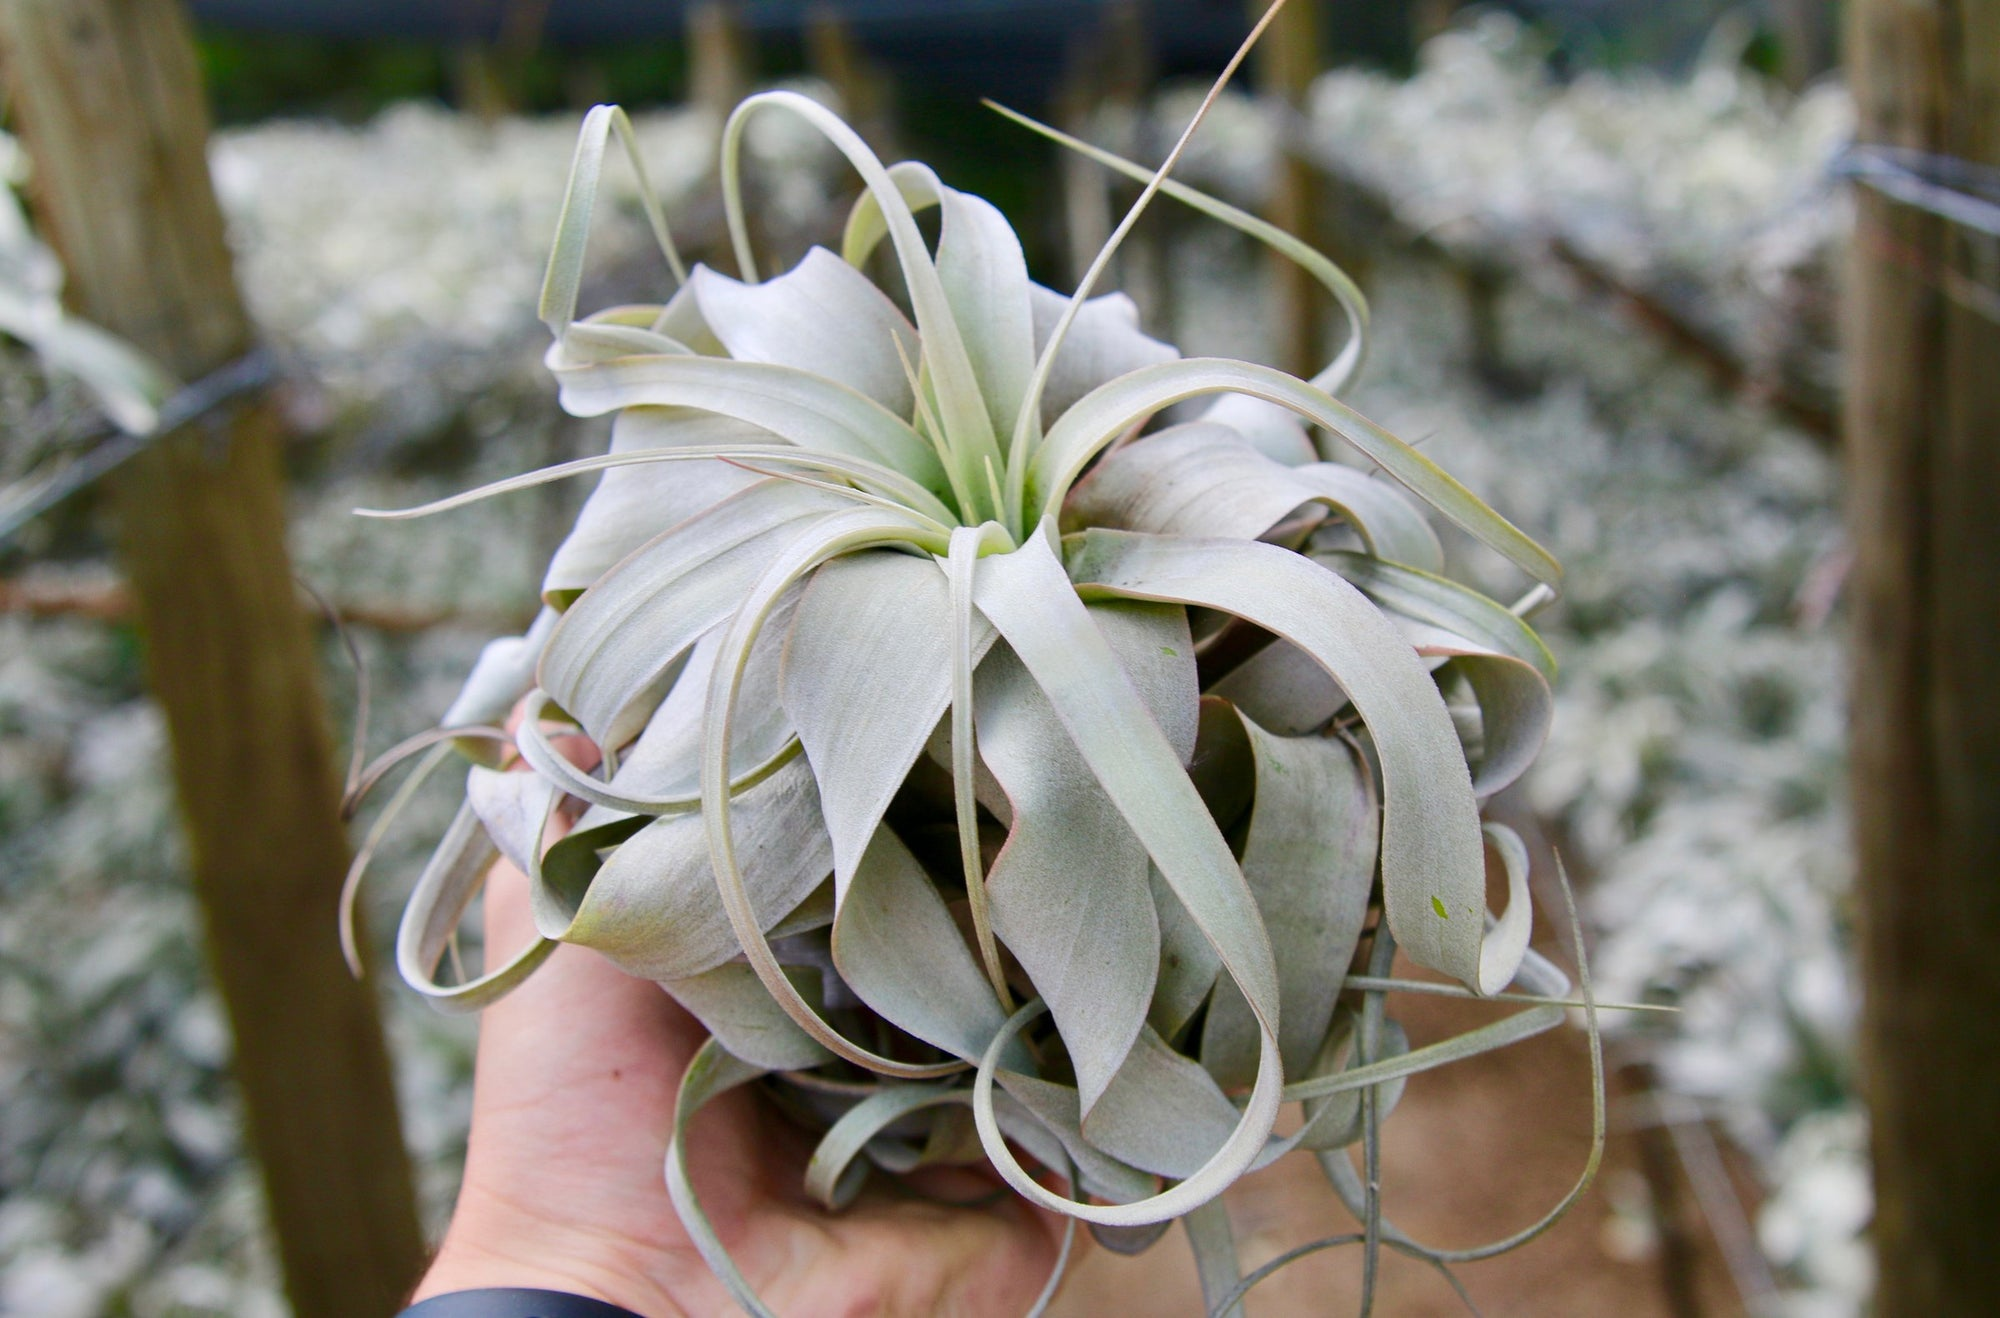 Wholesale: Medium Tillandsia Xerographica Air Plants / 5-6 Inches Across [Min Order 6] from AirPlantShop.com